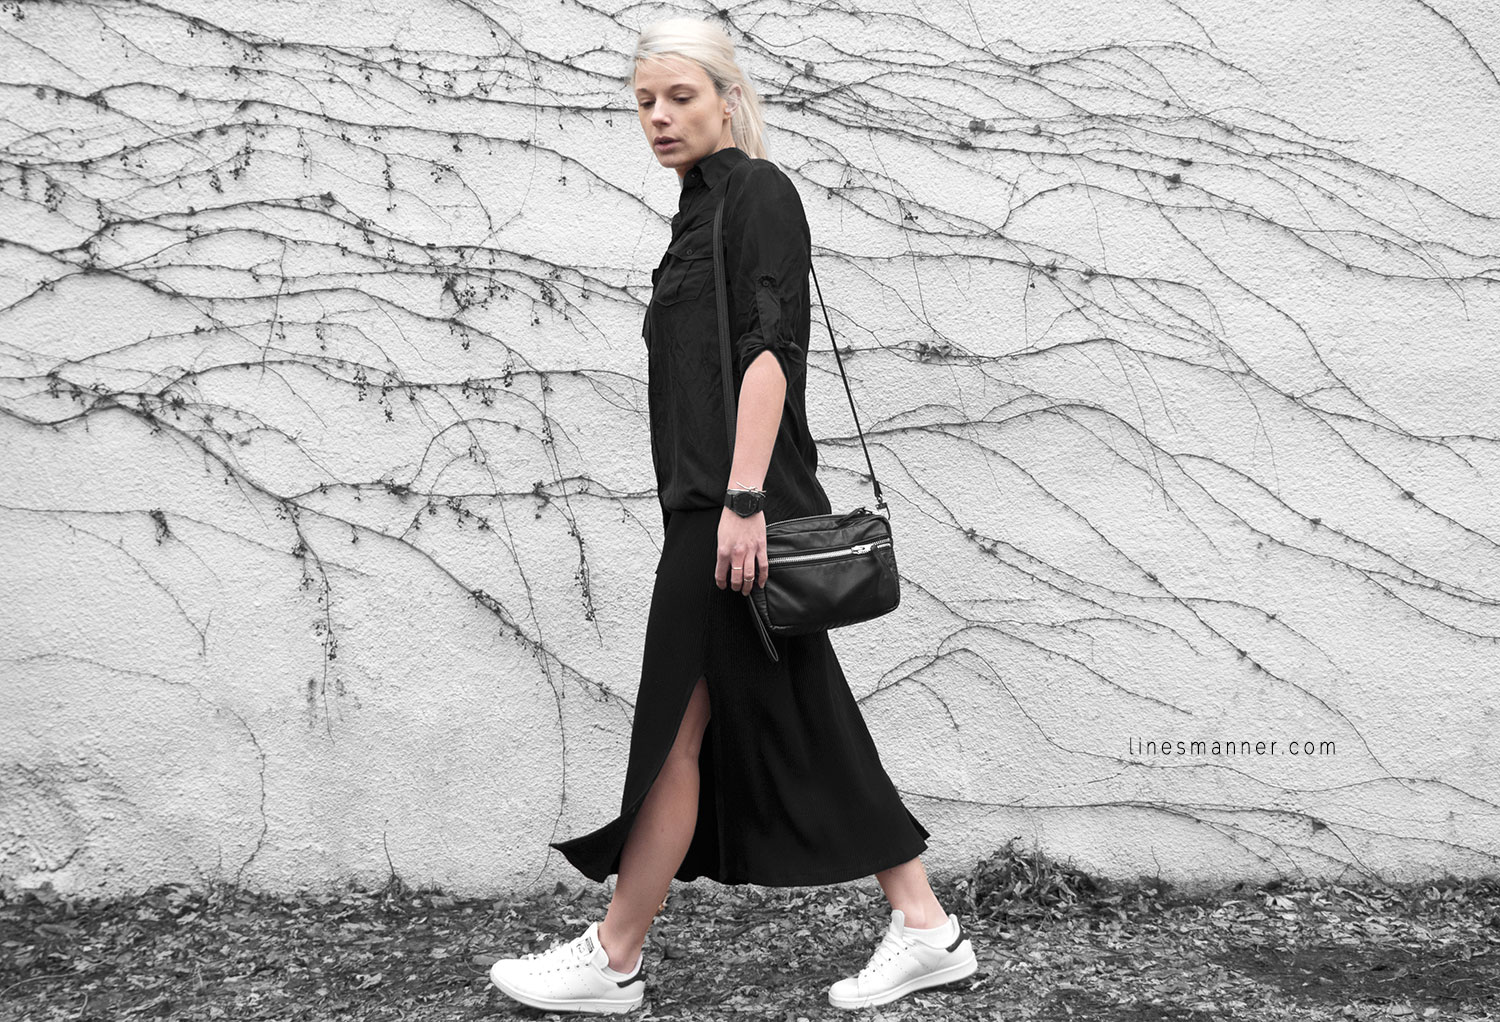 All_black_everything-monochrome-essentials-oversize-fit-textures-minimal-details-basics-staples-layering-feminine-masculine-2